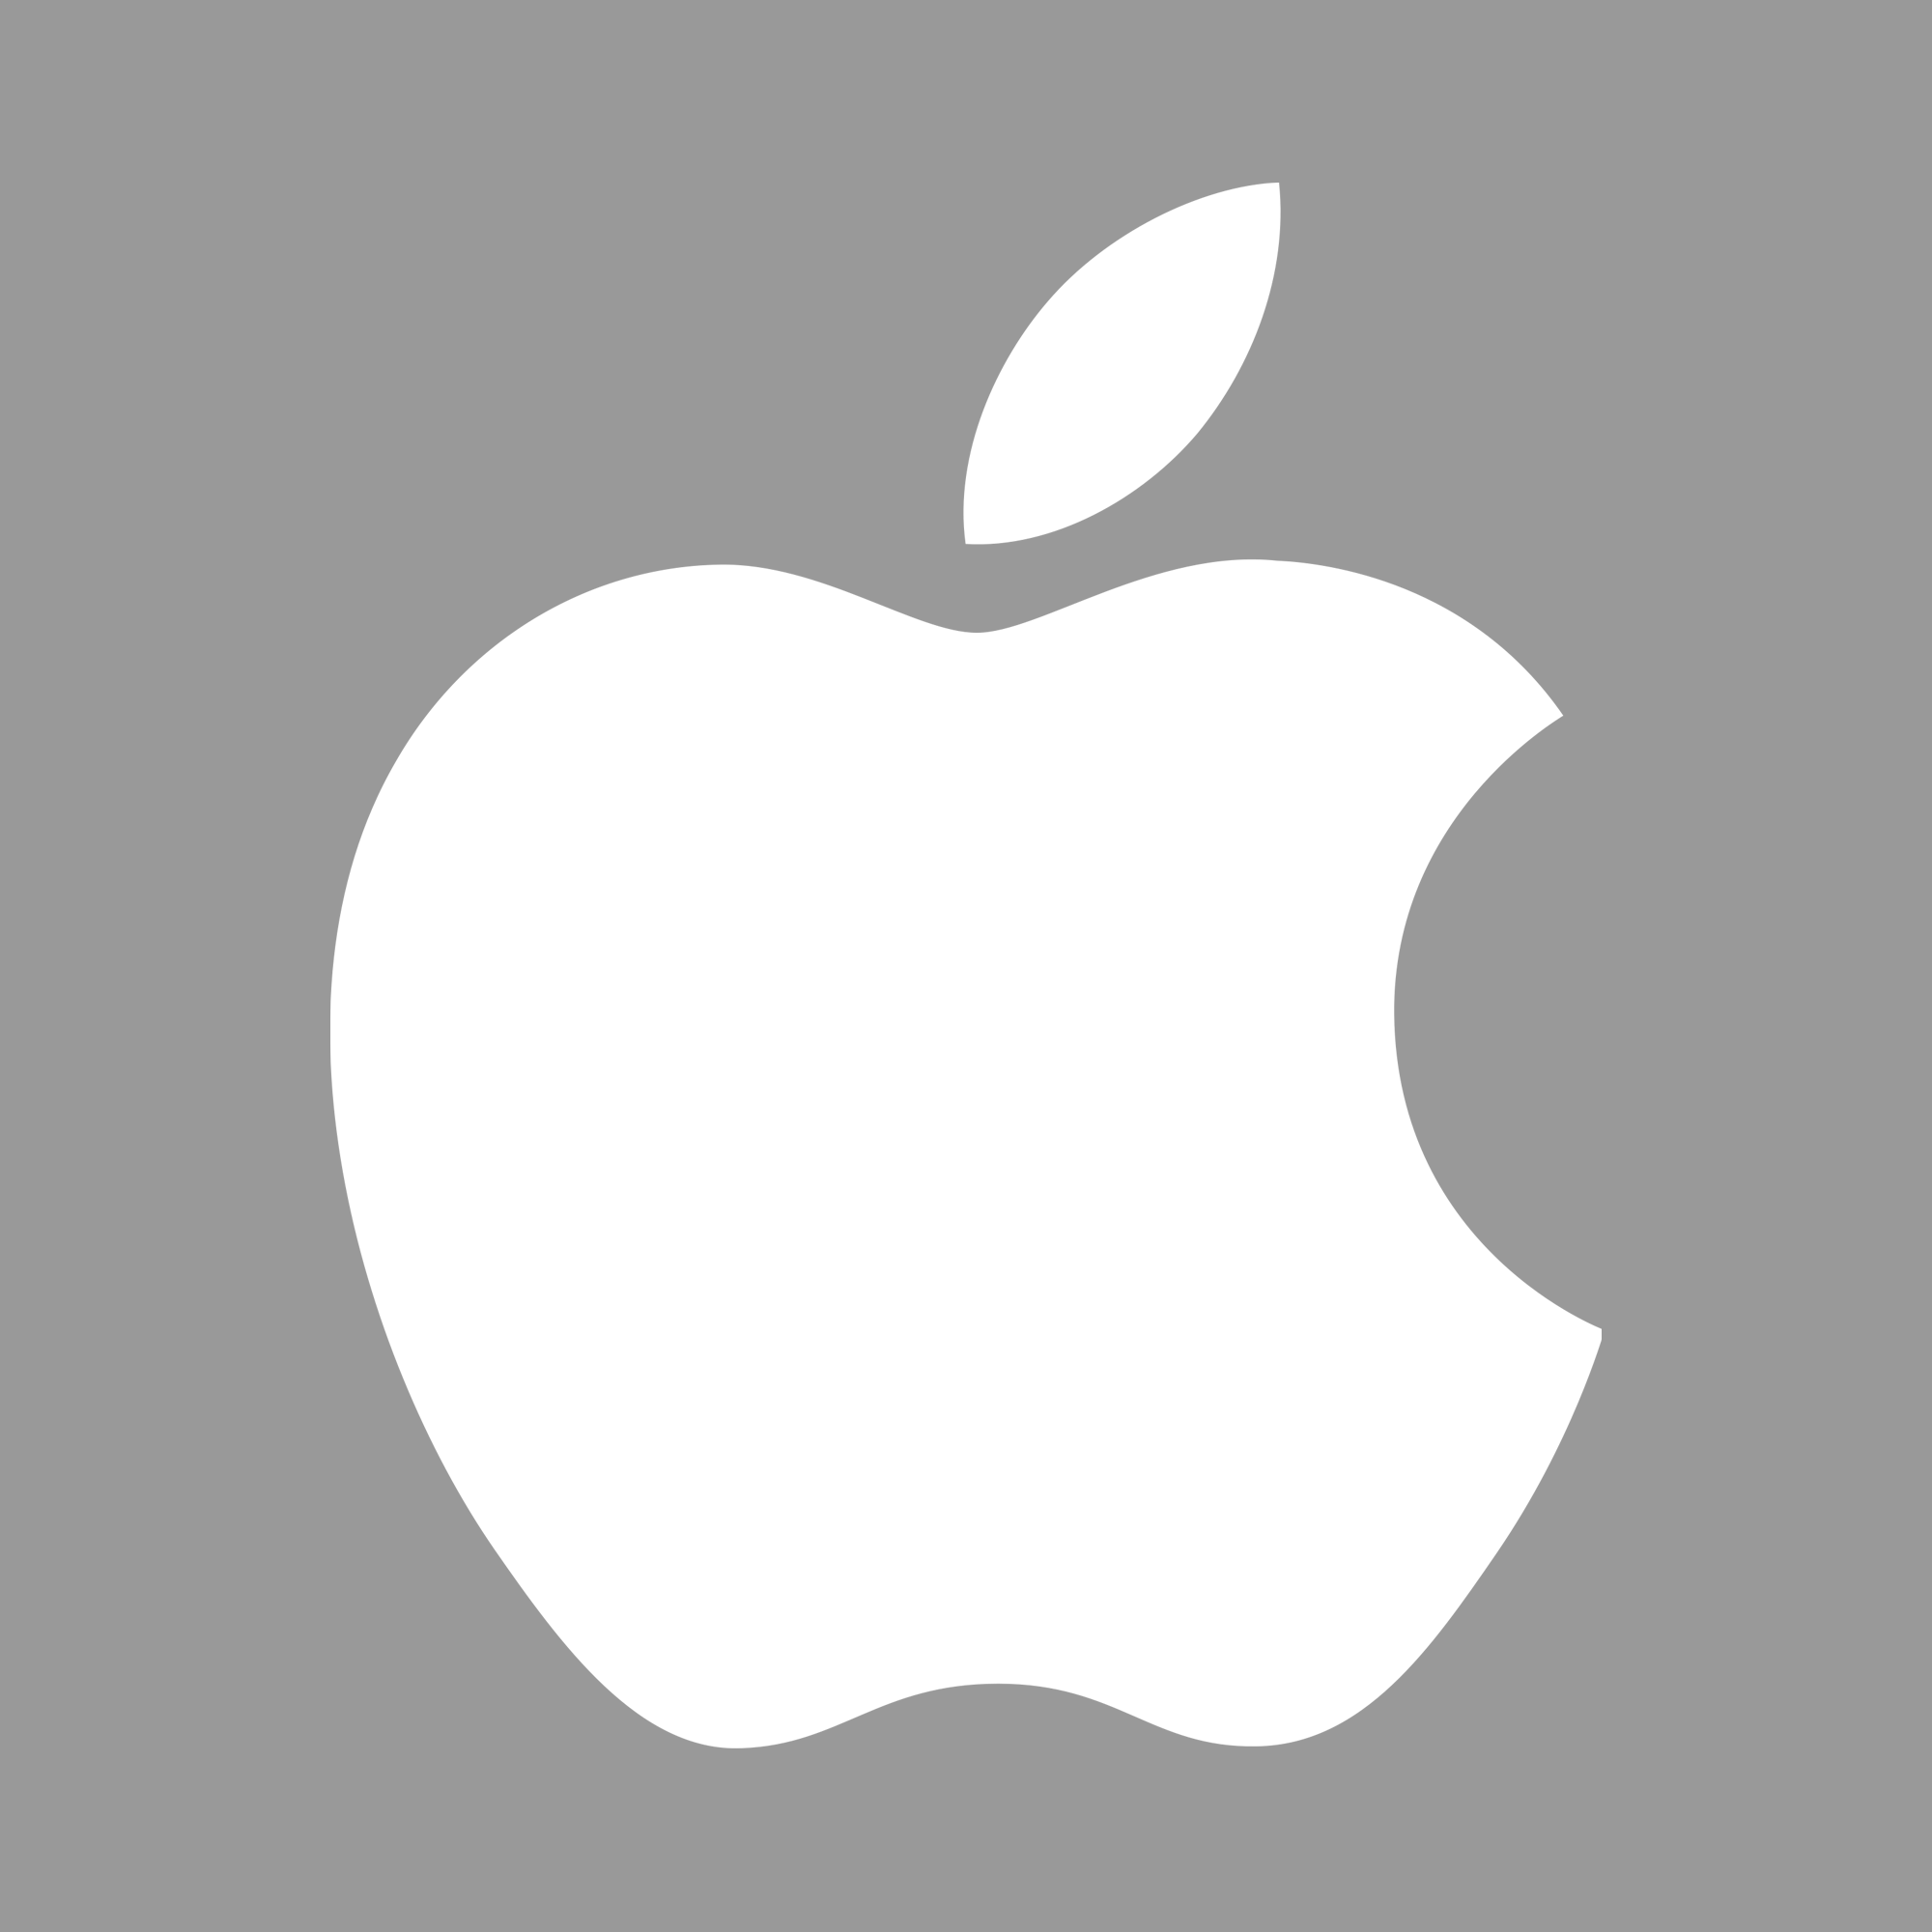 Icon Apple Logo Library image #14897